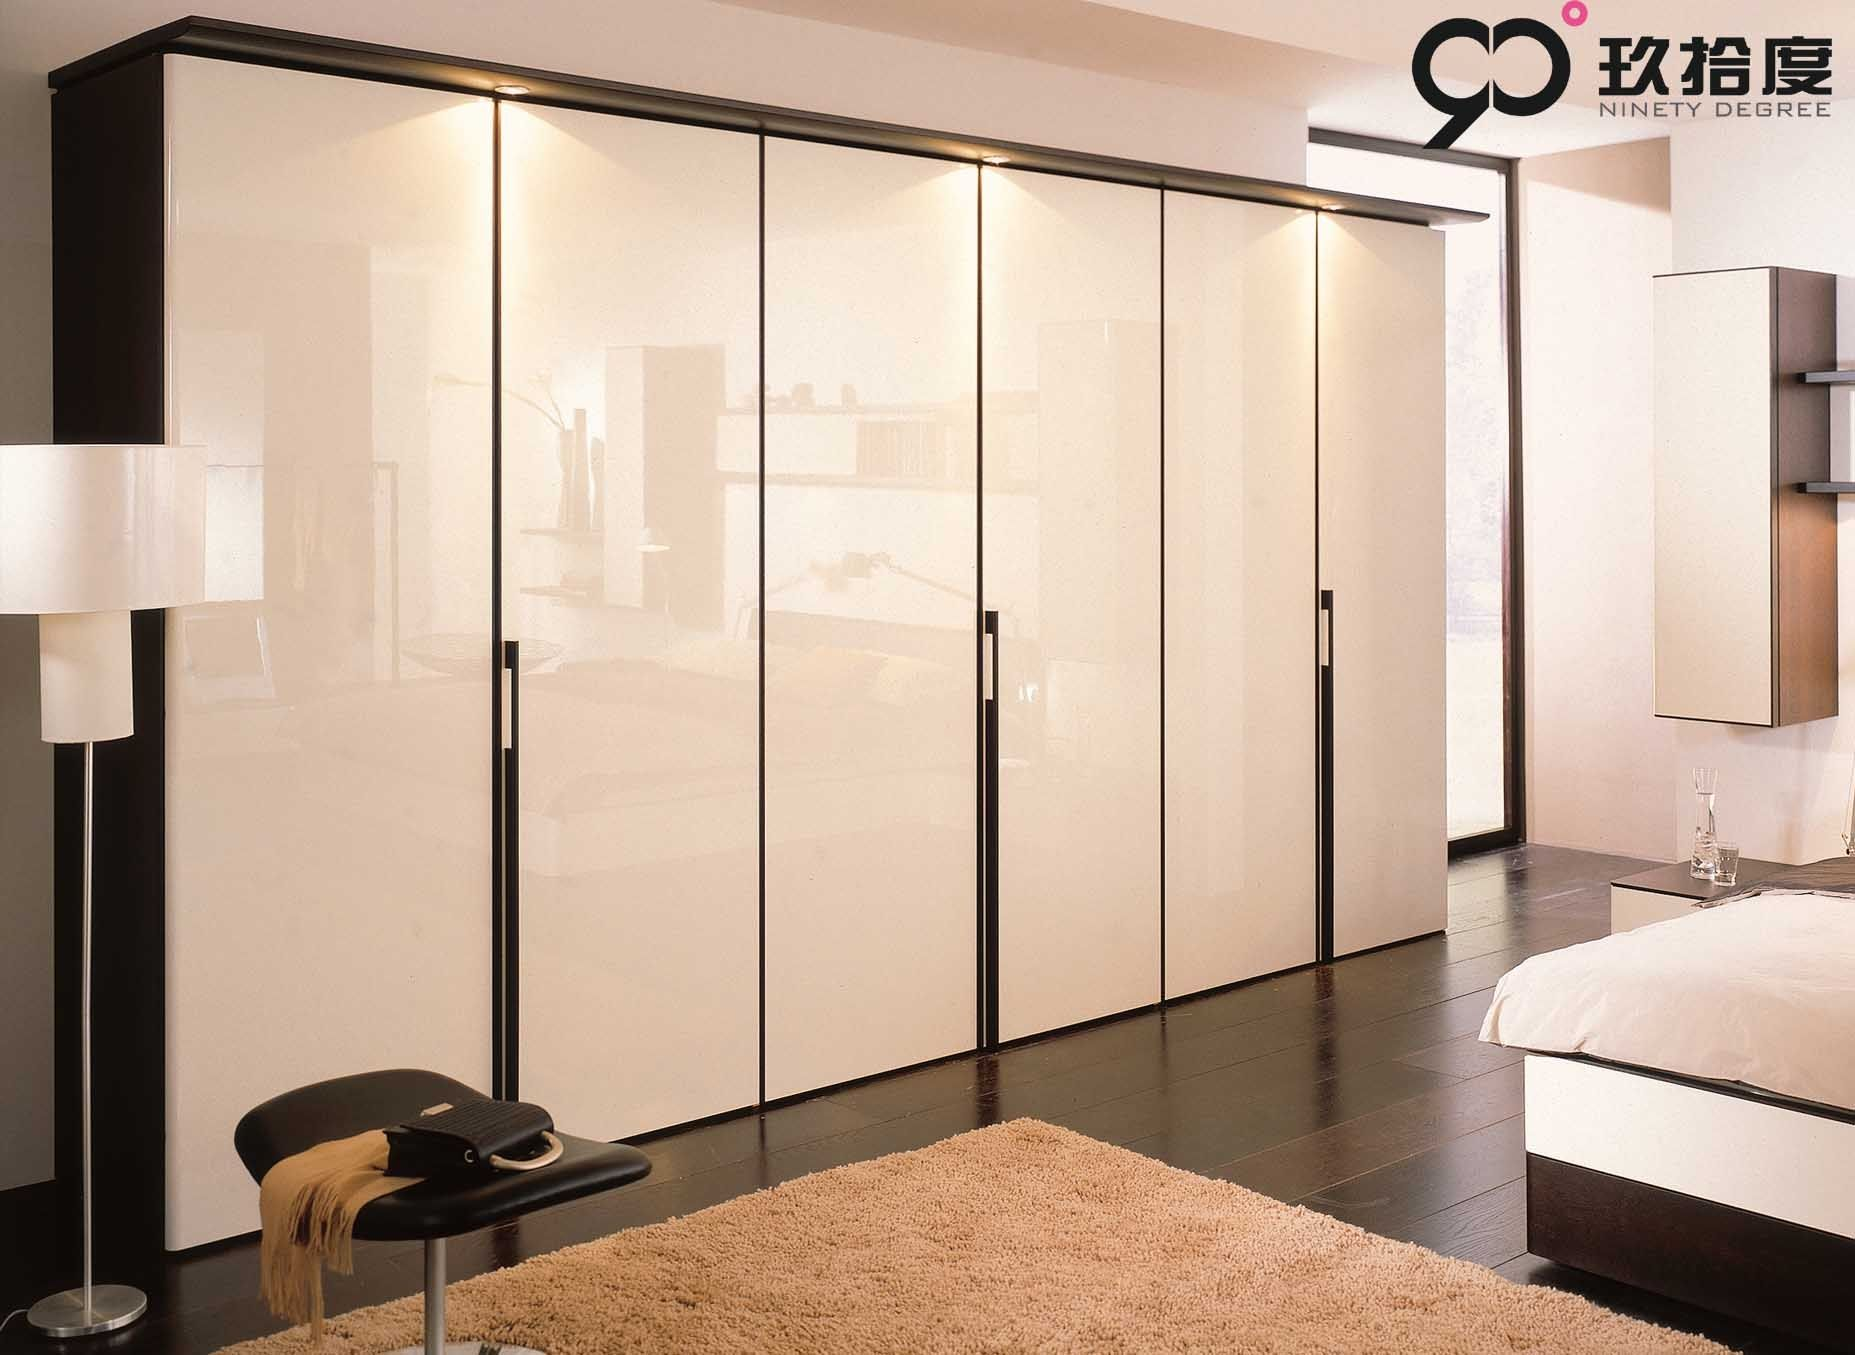 Built in bedroom cabinets modern with photo of built in collection at - Bedroom Lavish White High Gloss Wardrobe Design Polished As Inspiring Built In Closet System In